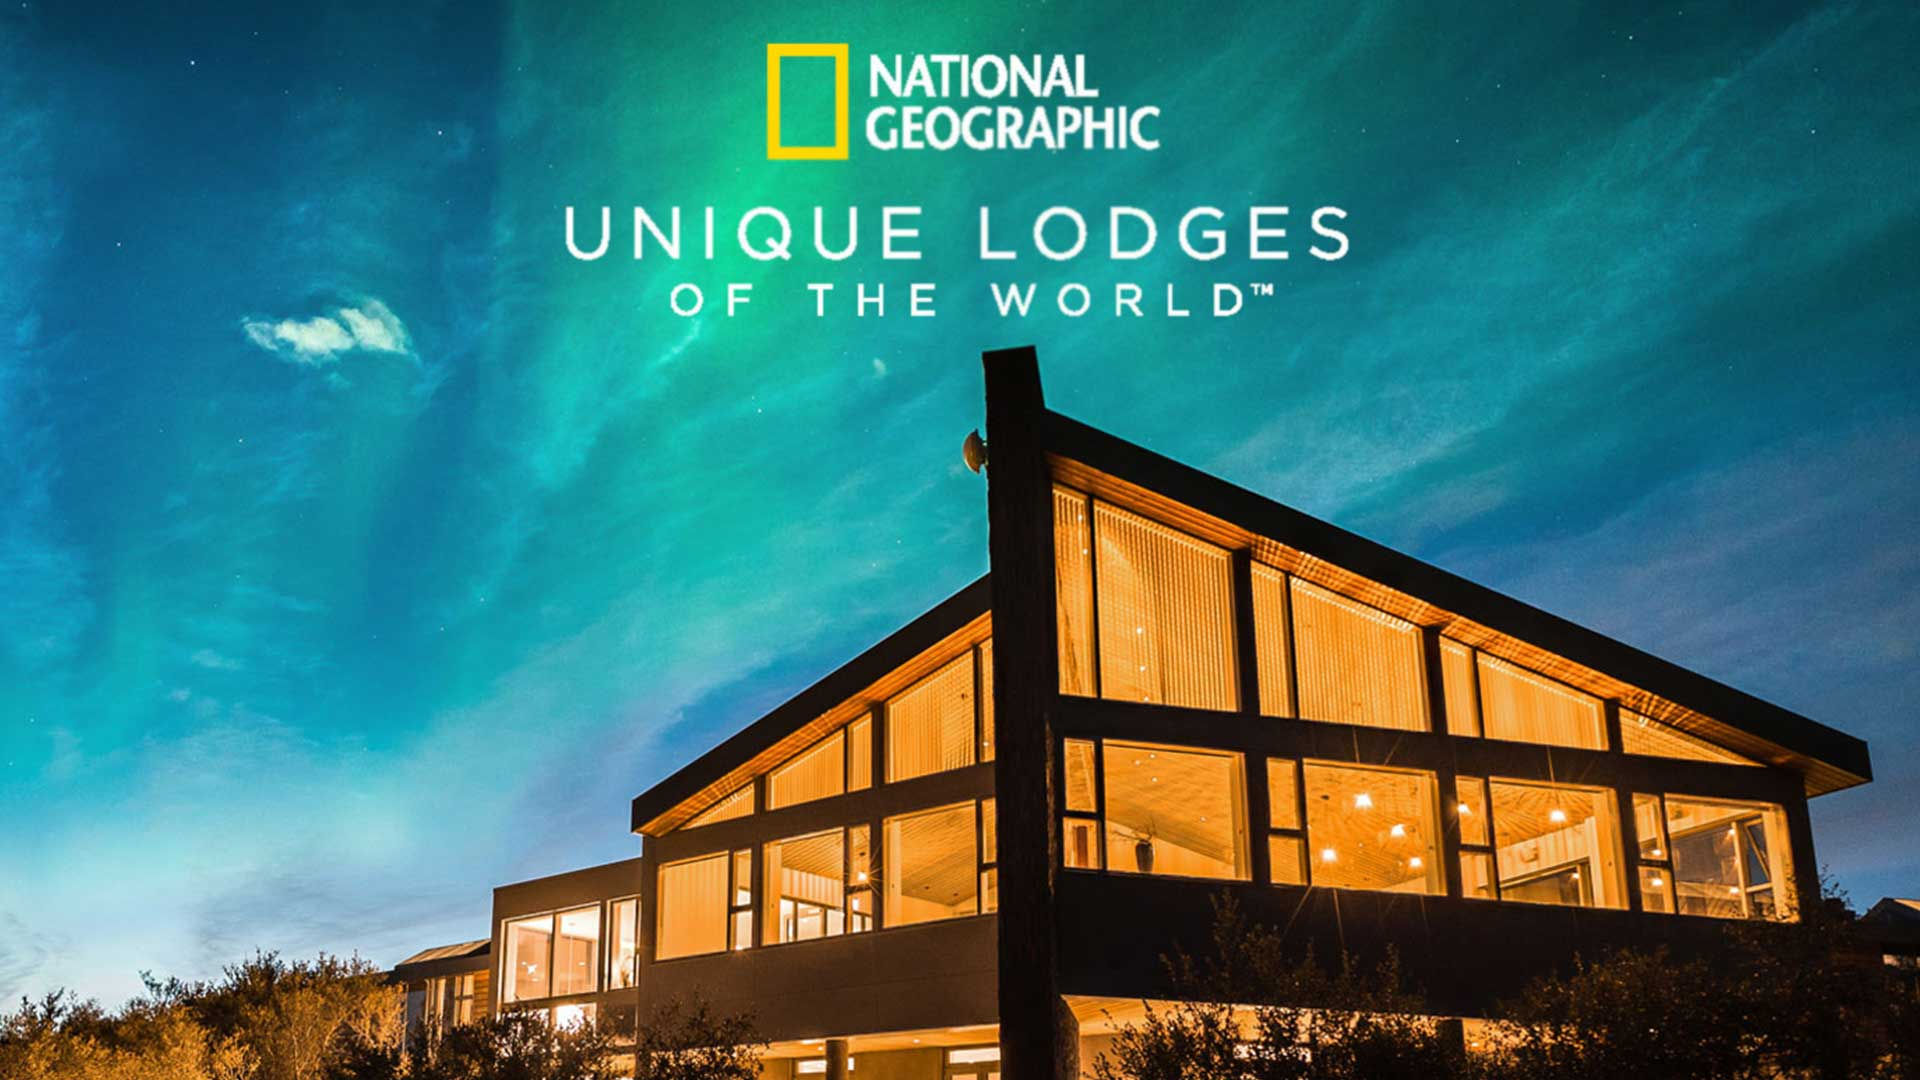 Hotel Húsafell Joins National Geographic Unique Lodges of the World!